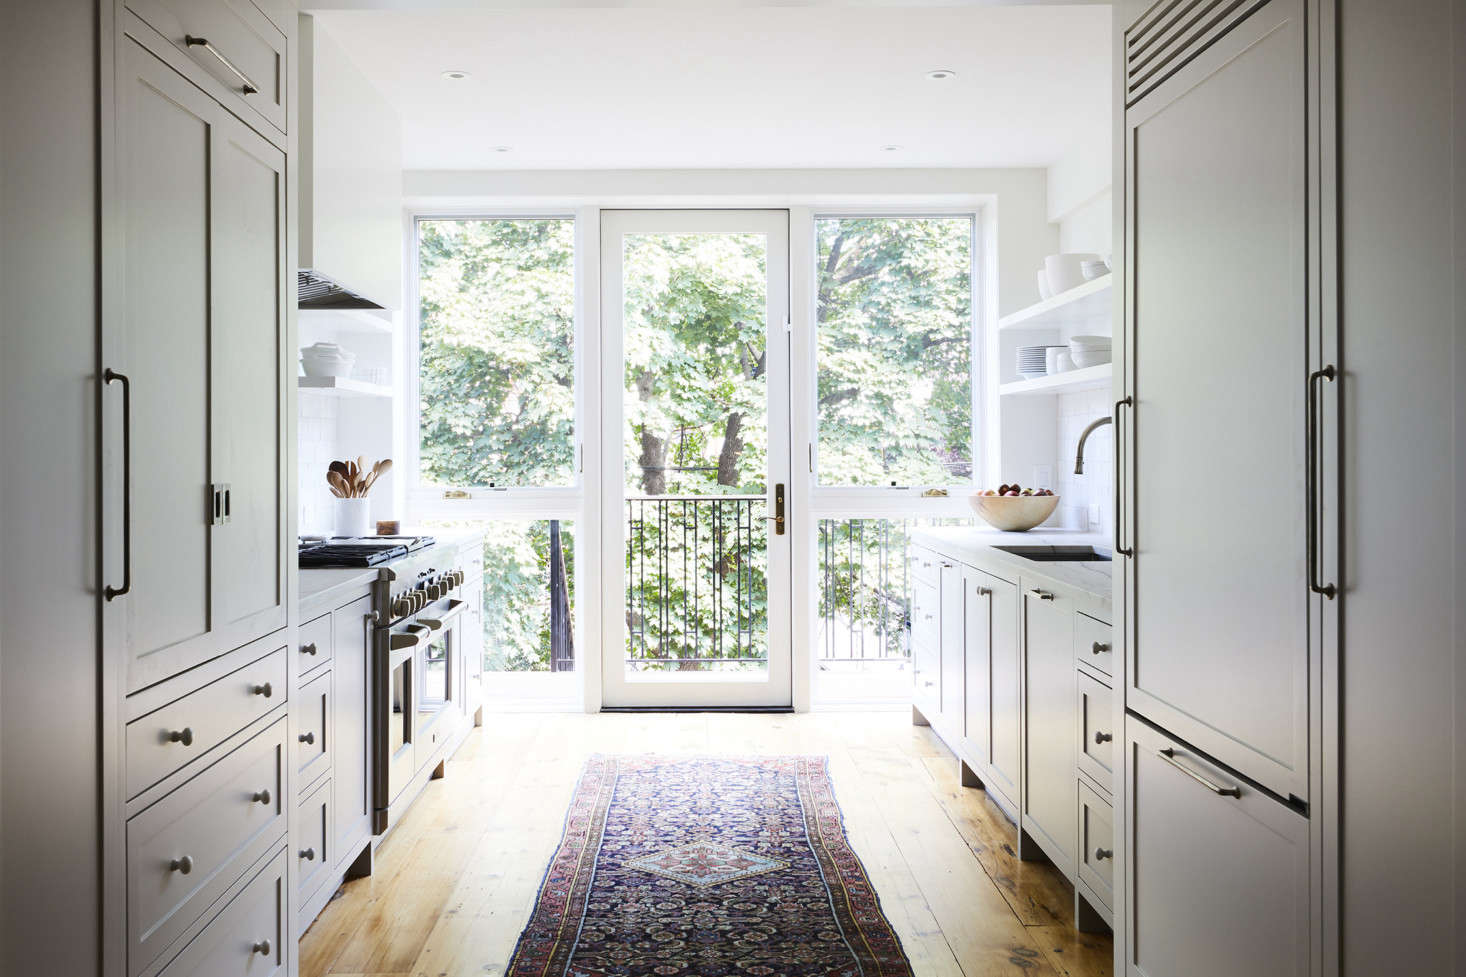 To separate the new .5-foot-wide kitchen and provide plenty of storage, Bangia and Agostinho designed a &#8